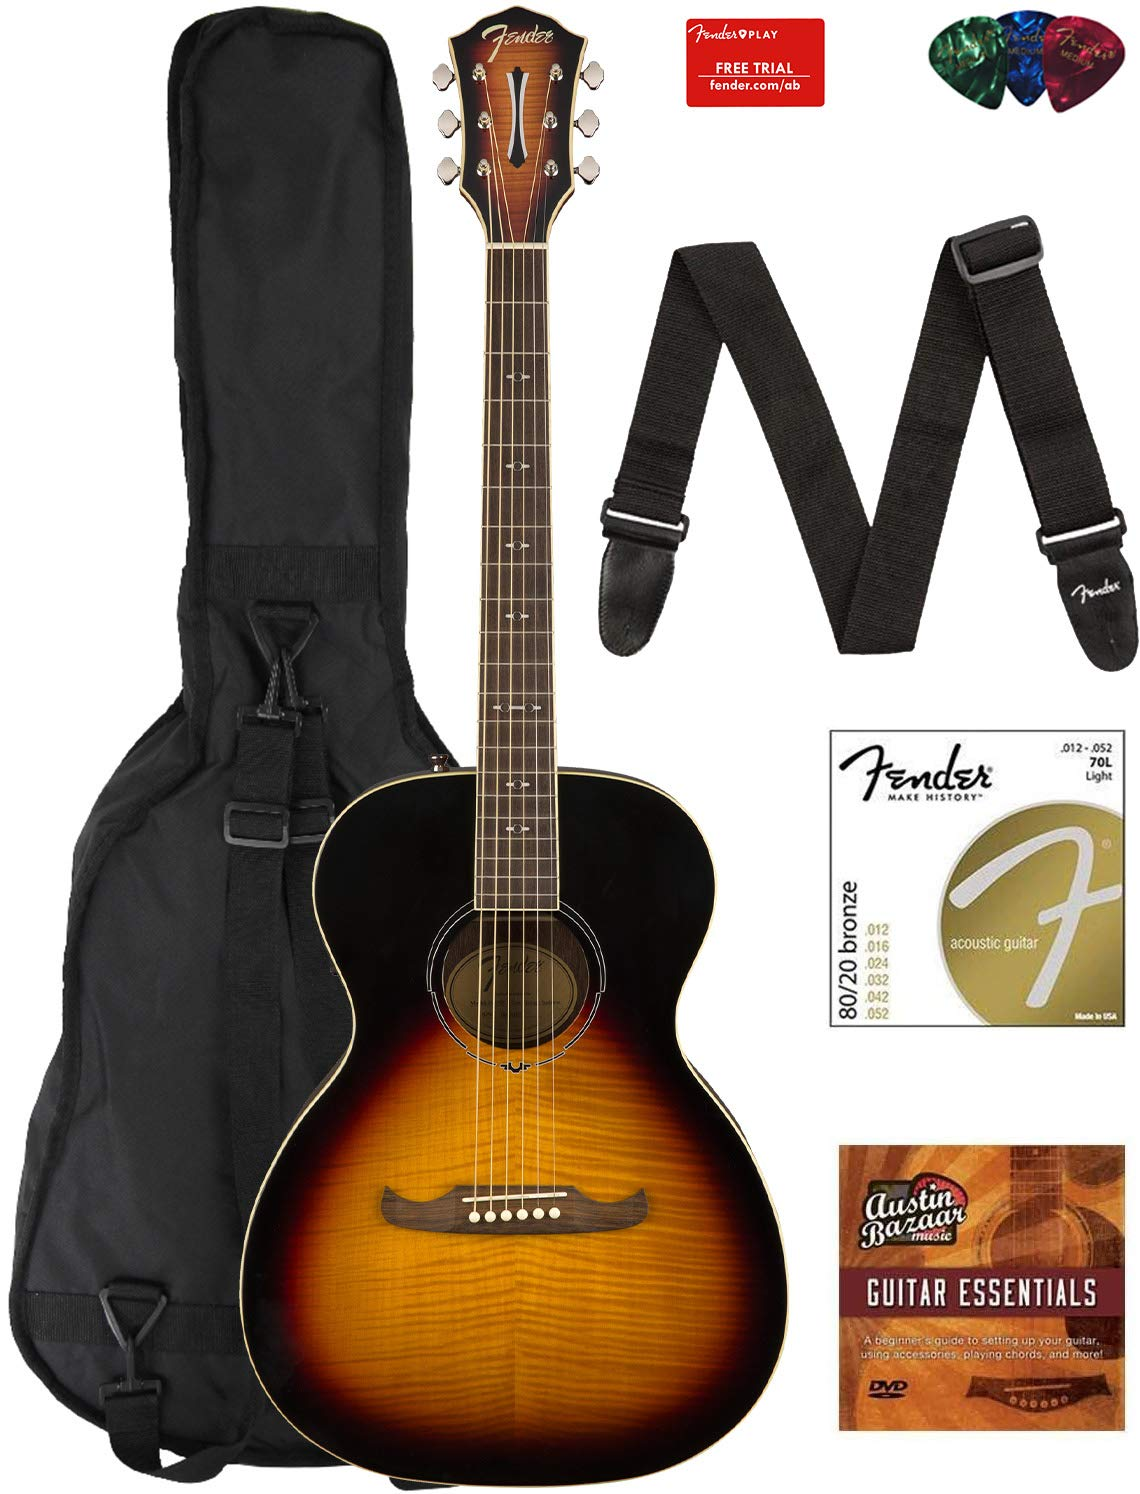 Fender FA-235E Concert Acoustic-Electric Guitar Bundle with Gig Bag, Strap, Strings, Picks, Fender Play Online Lessons, and Austin Bazaar Instructional DVD